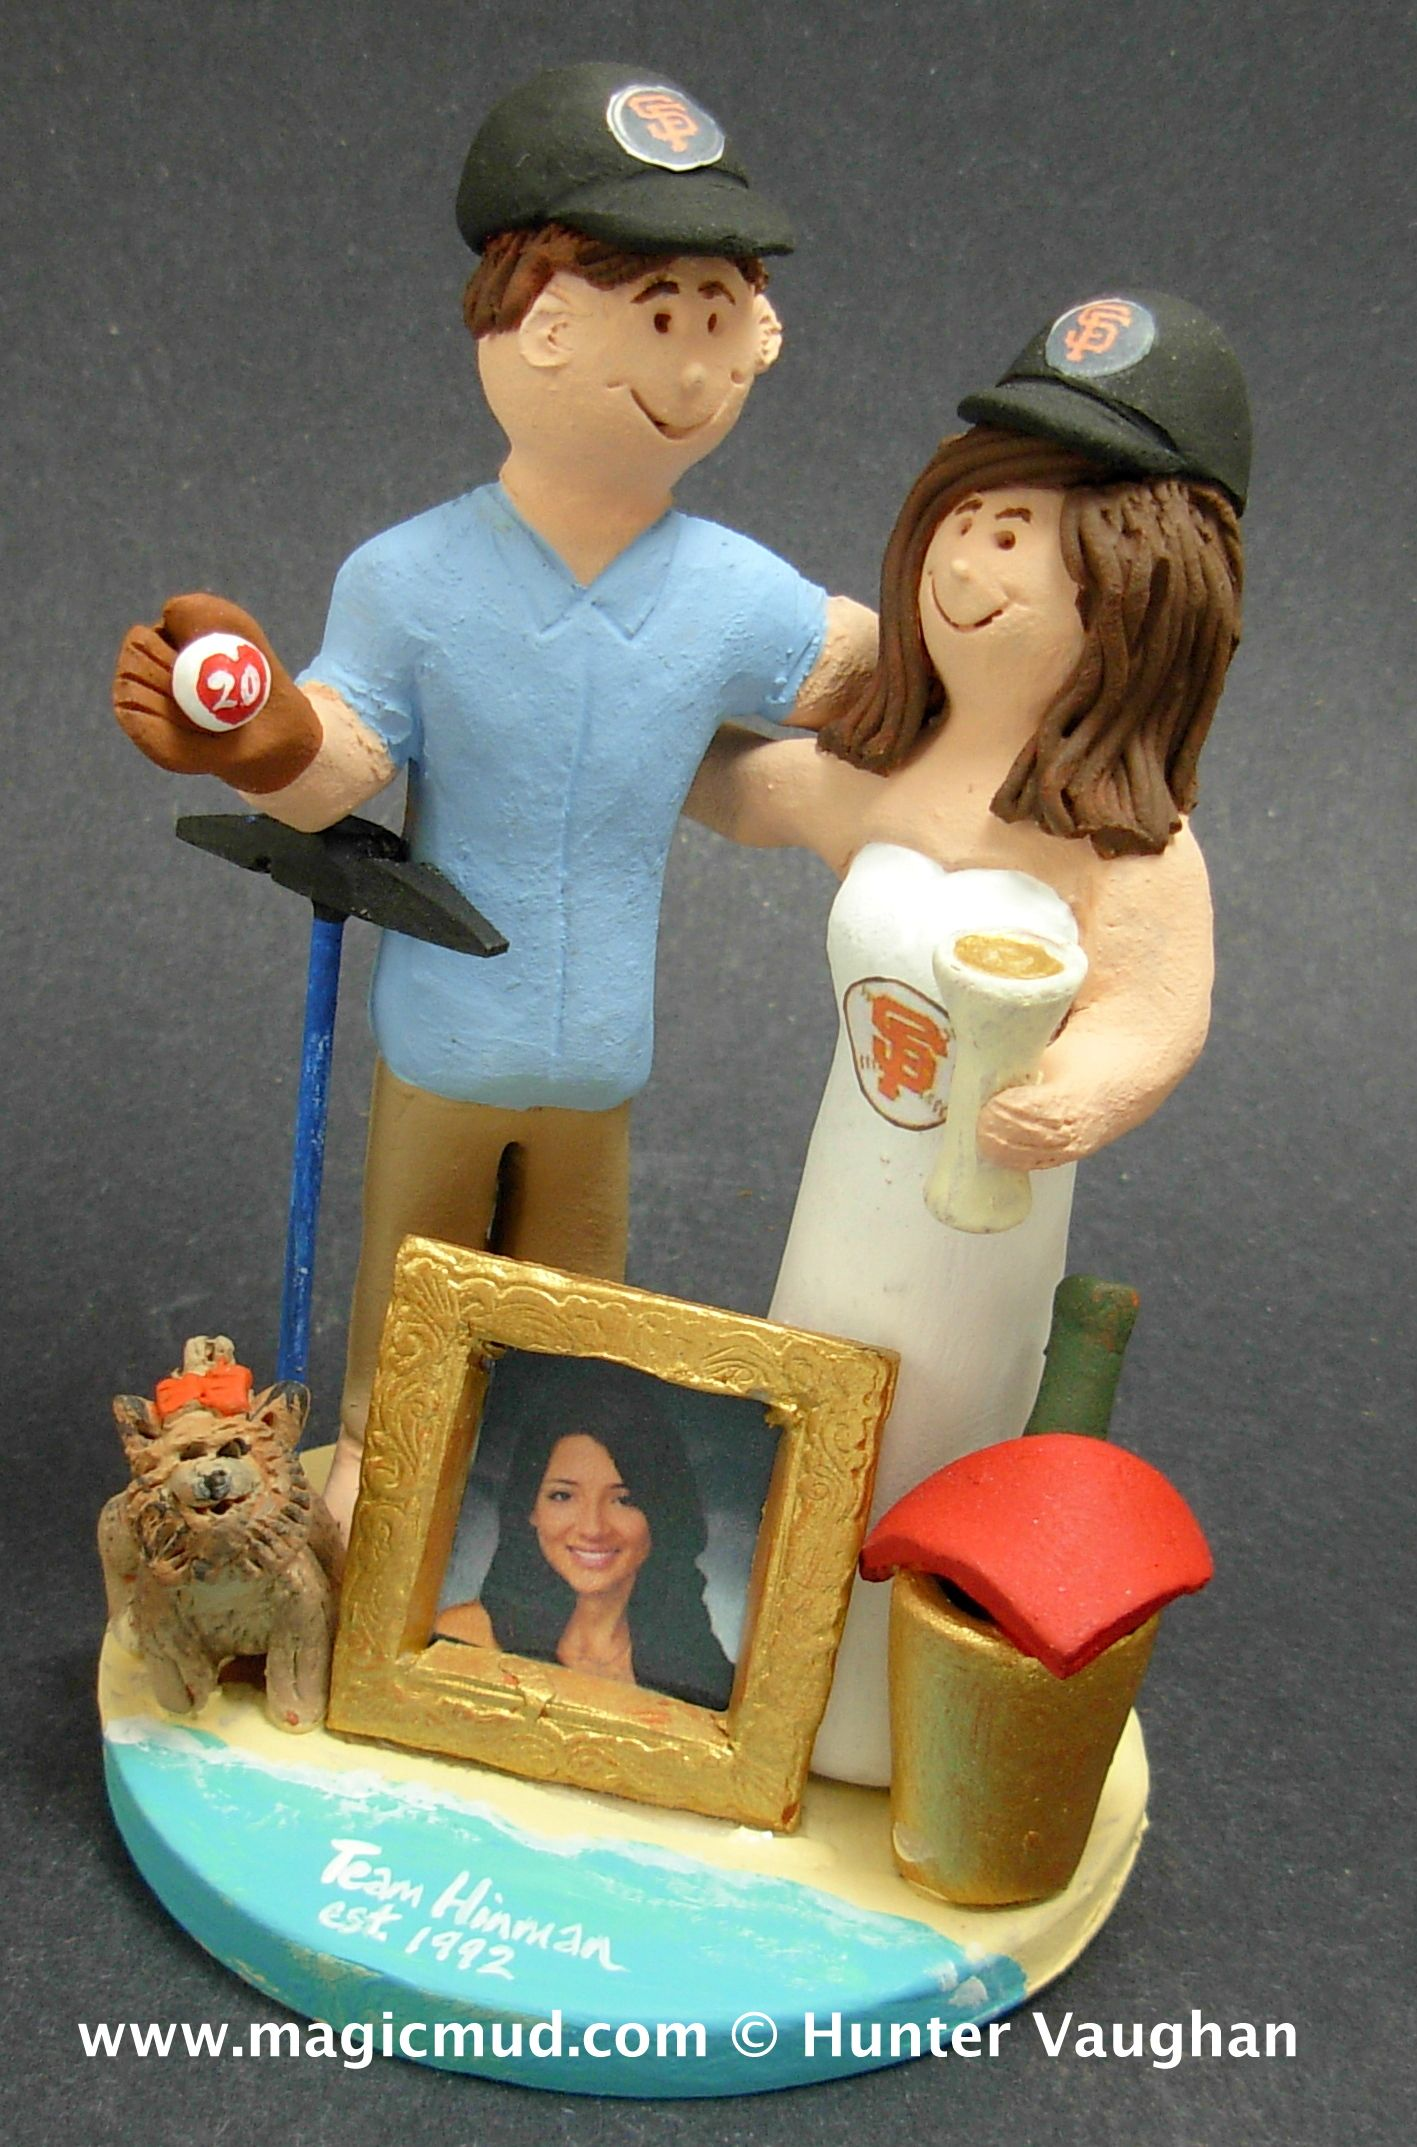 20th Wedding Anniversary Cake Topper by http://magicmud.com/Wedding%20photos.htm  $235  magicmud@magicmud.com  1 800 231 9814  https://www.facebook.com/PersonalizedWeddingCakeToppers  https://twitter.com/caketoppers  #wedding #cake #toppers  #custom #personalized #Groom #bride #anniversary #birthday#weddingcaketoppers#cake toppers#figurine#gift#wedding cake toppers #beach #destination